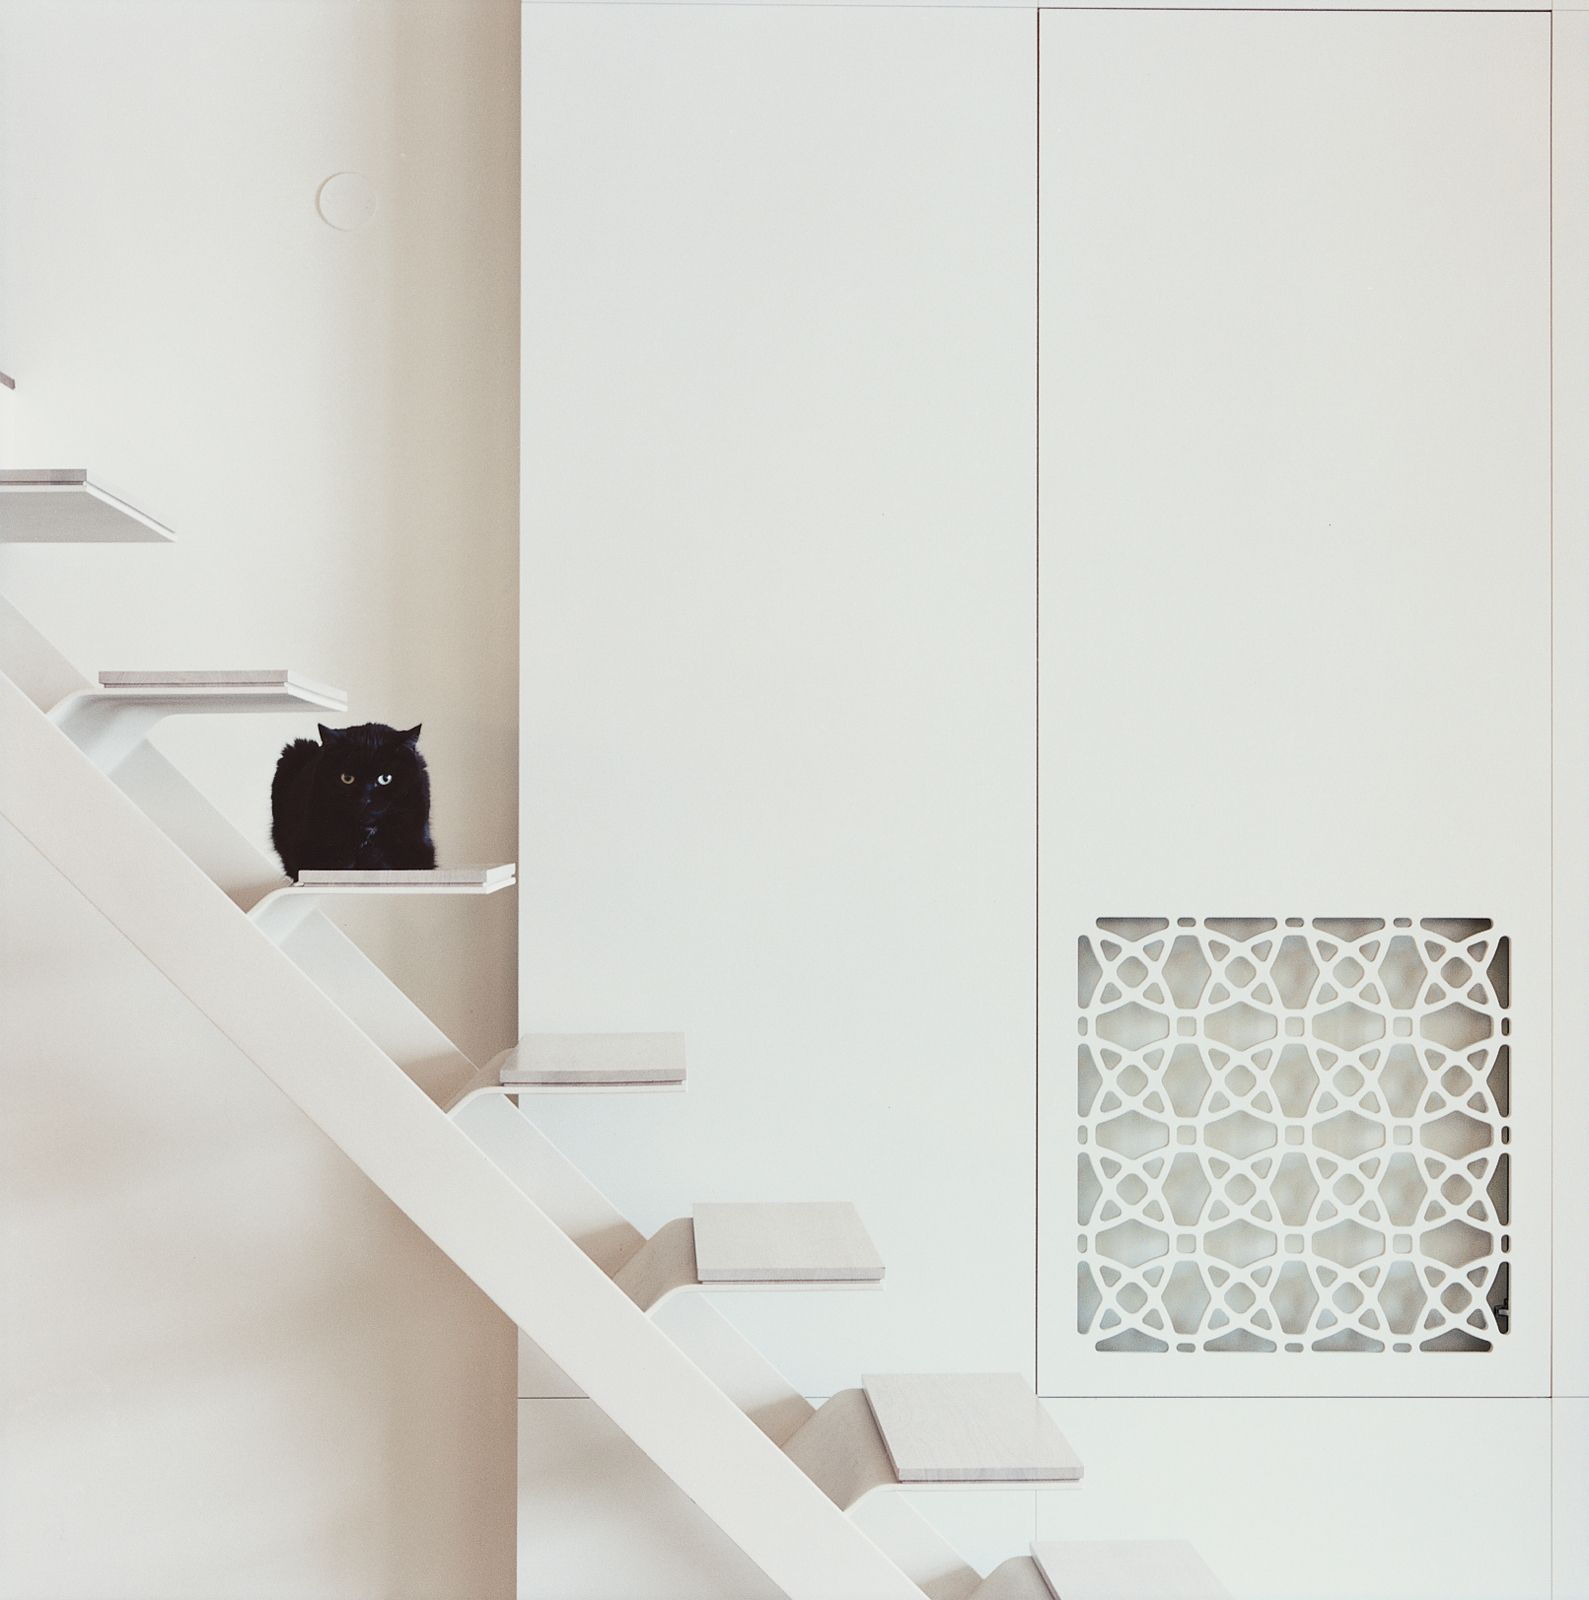 Whether you're going up or going down, an artfully constructed staircase never takes you in the wrong direction. Take a look at some of our favorite examples, taken from our photo library from issues past.